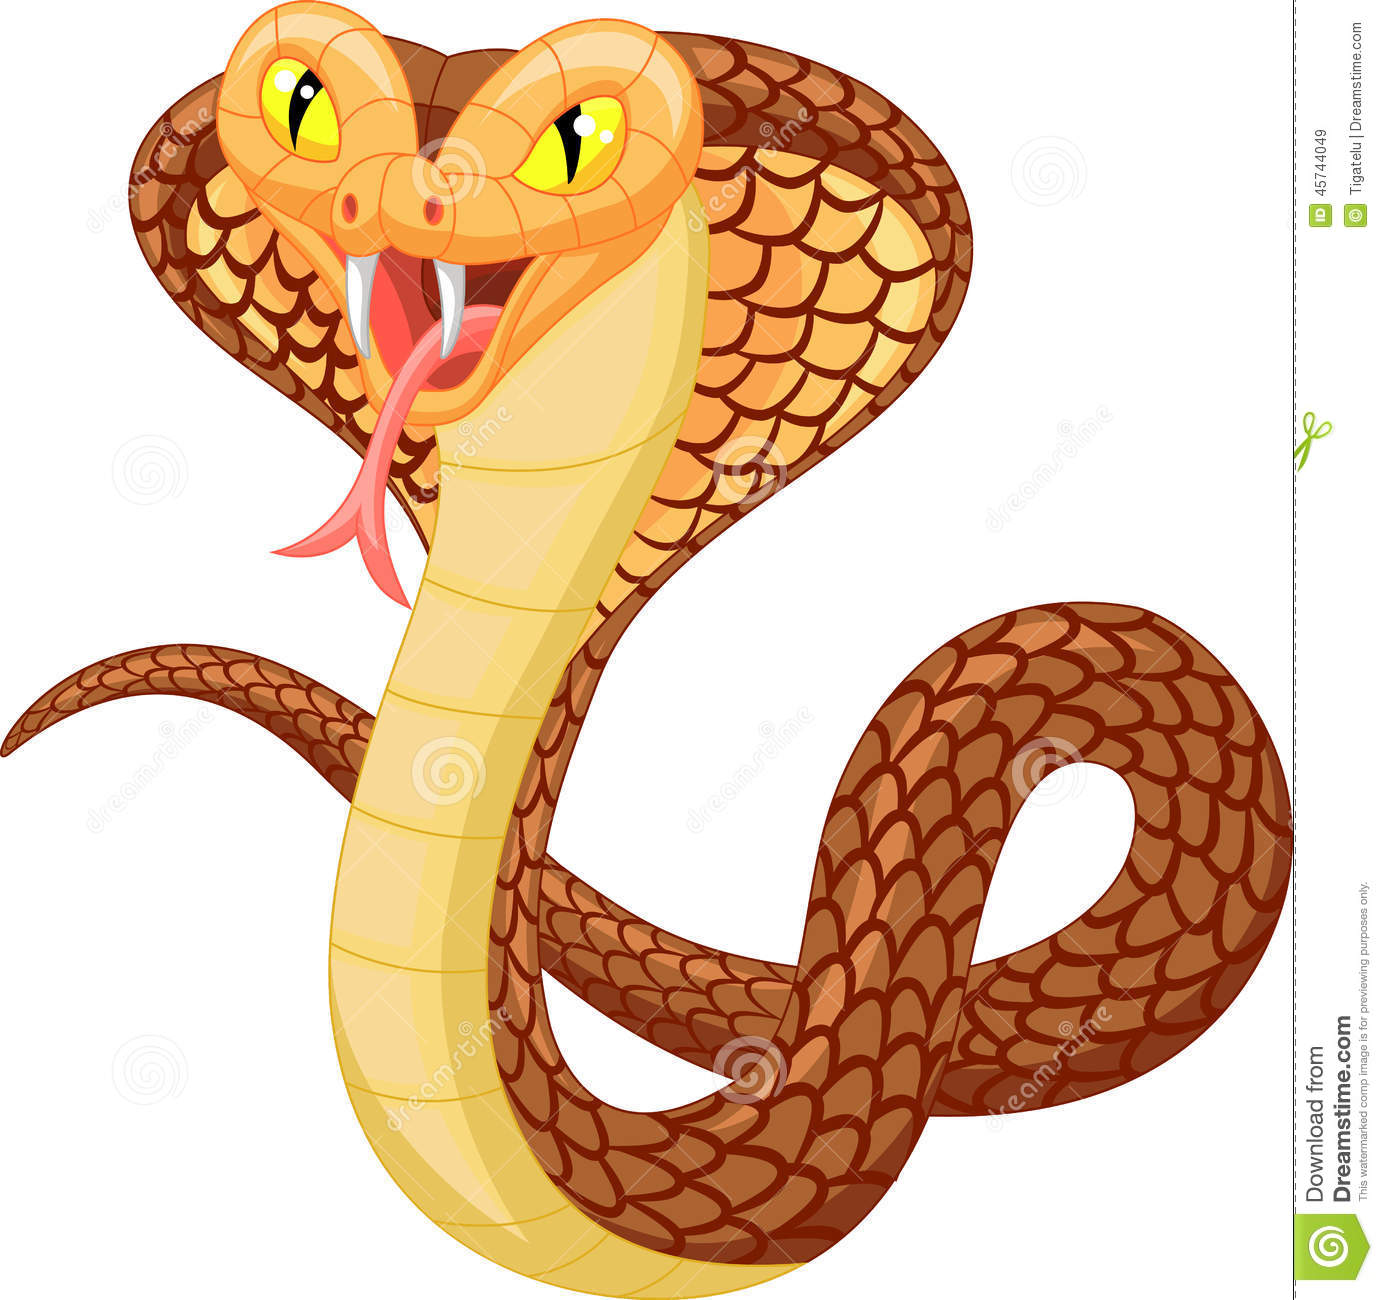 Angry Cobra Cartoon Stock Vector - Image: 45744049